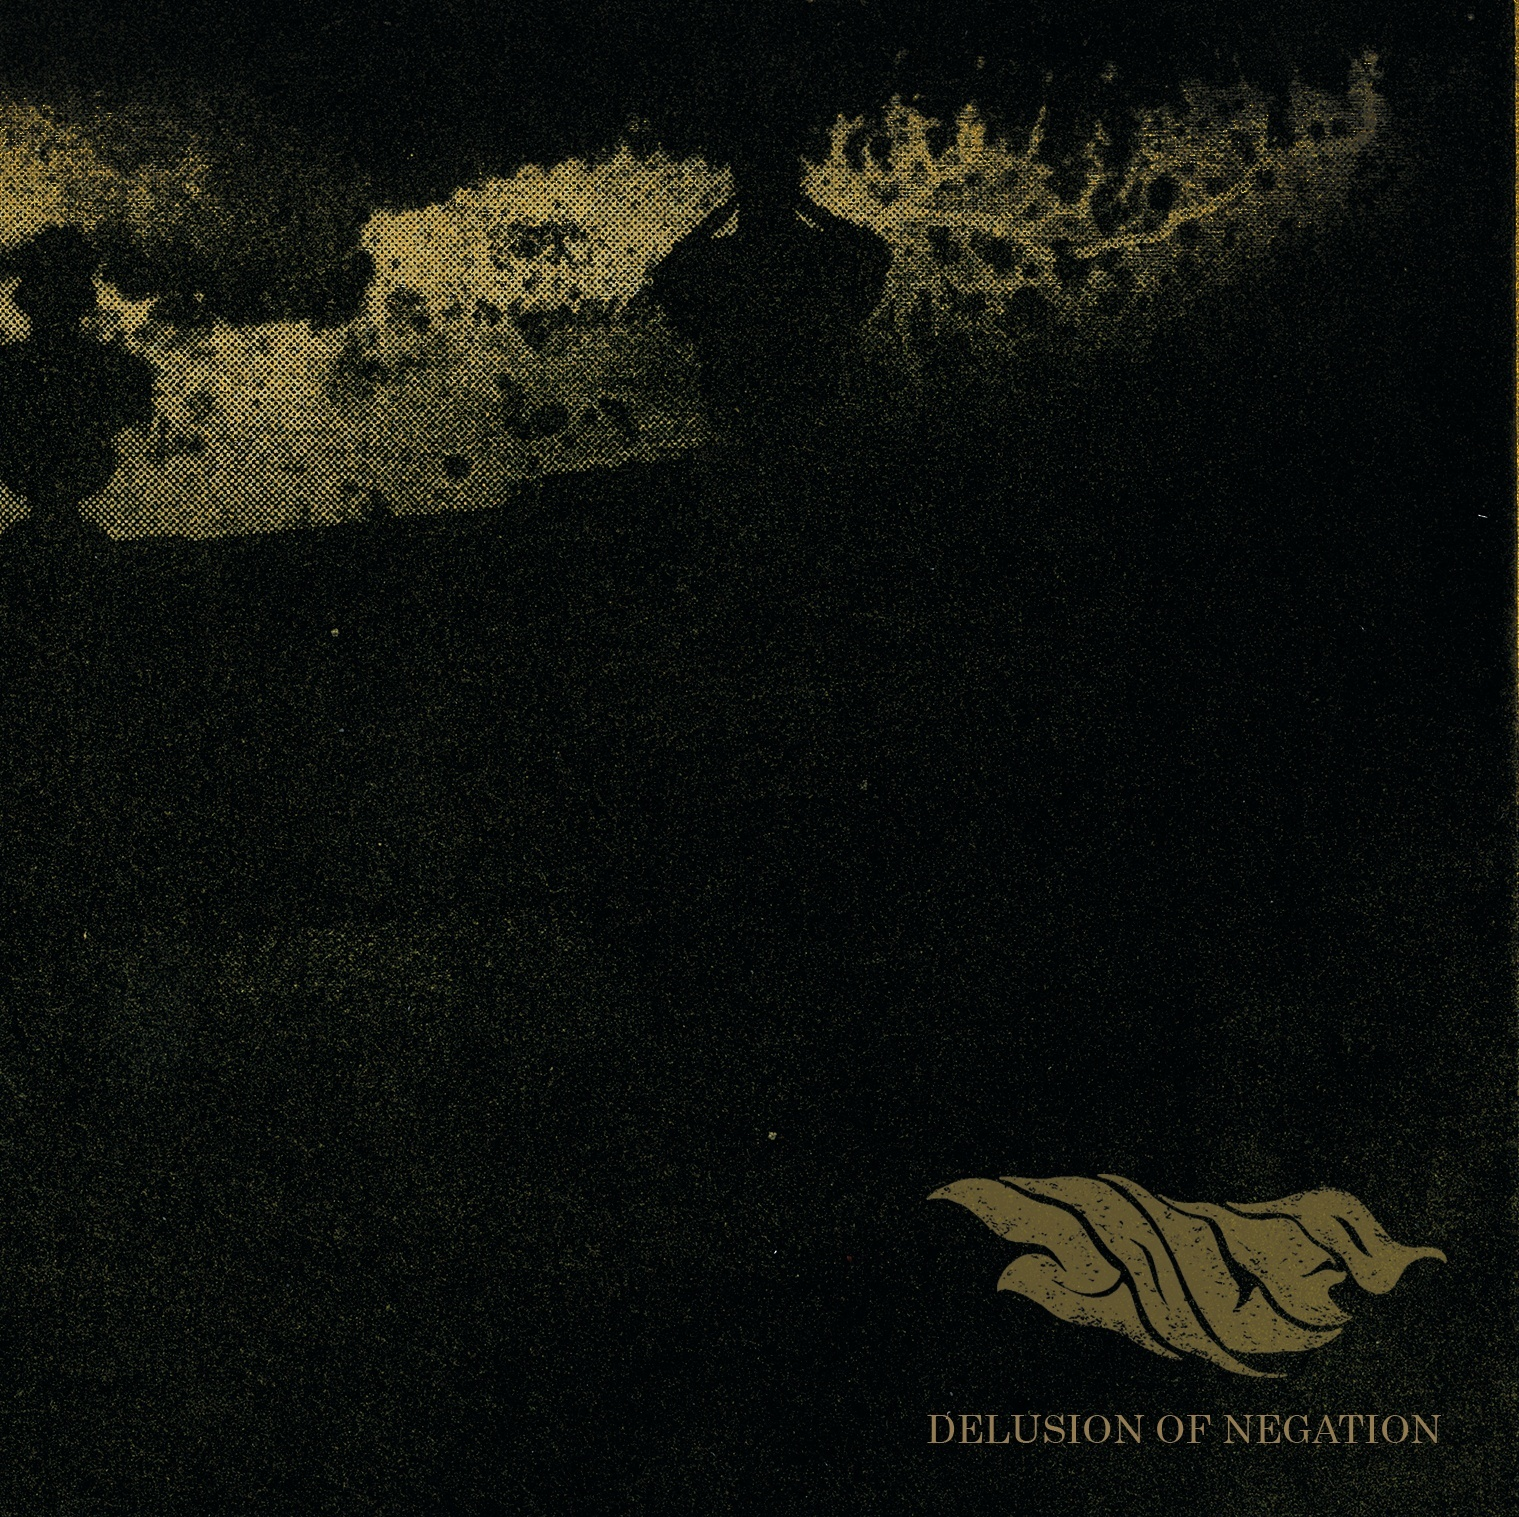 zolfo delusion of negation